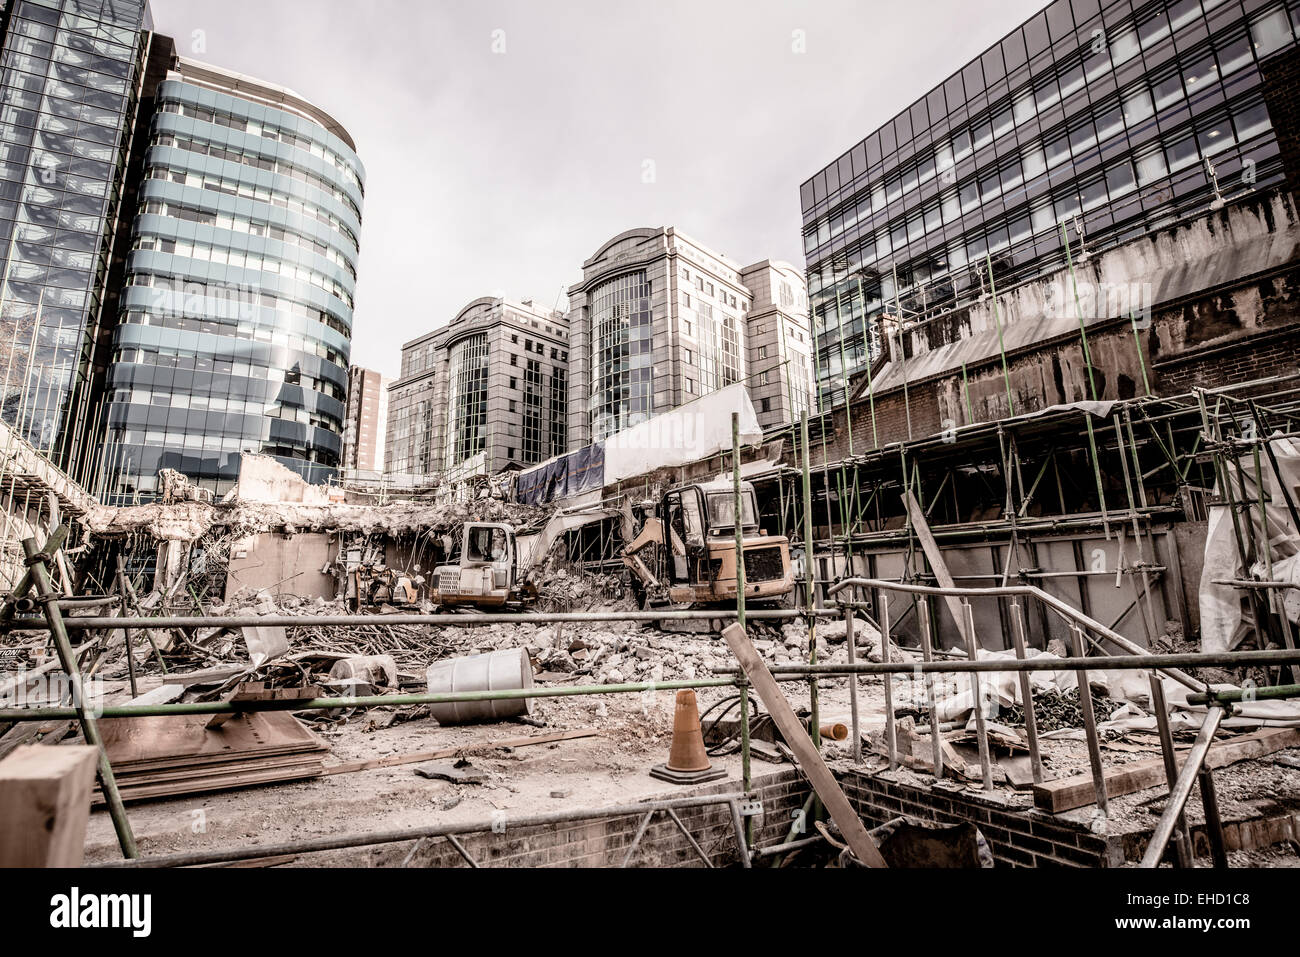 Building construction with modern offices in the background - Stock Image